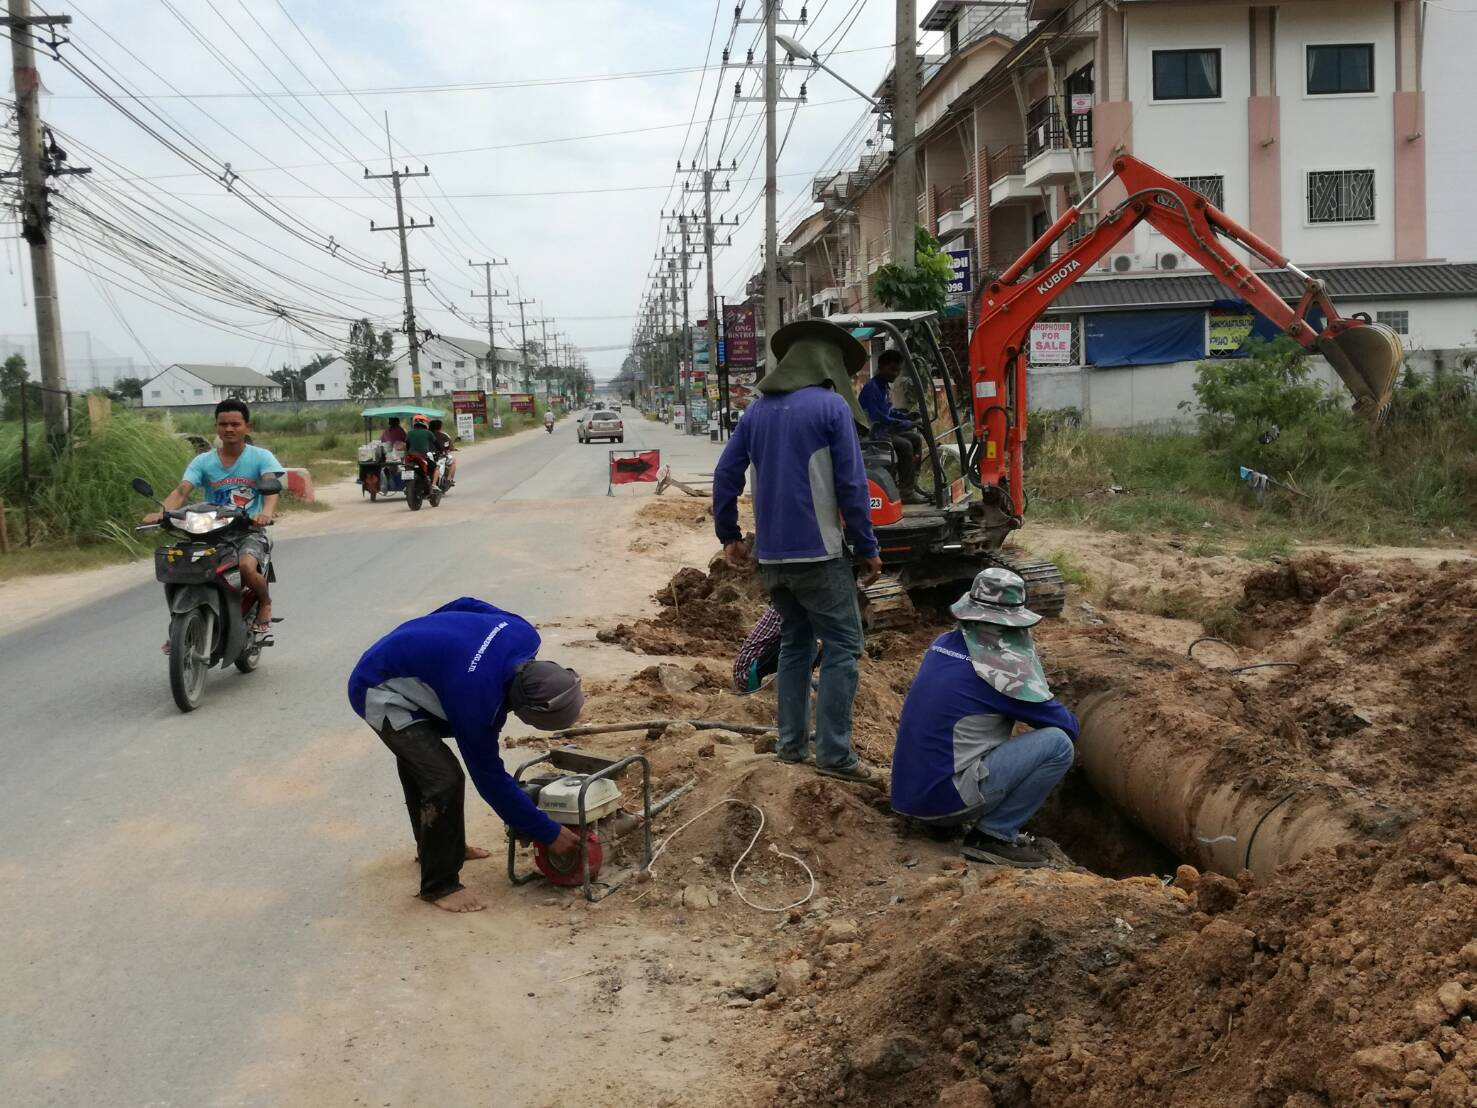 The Provincial Waterworks Authority launched an emergency operation to redirect water-supply pipes on Soi Siam Country Club after roadwork delays left area homes dry for two days.